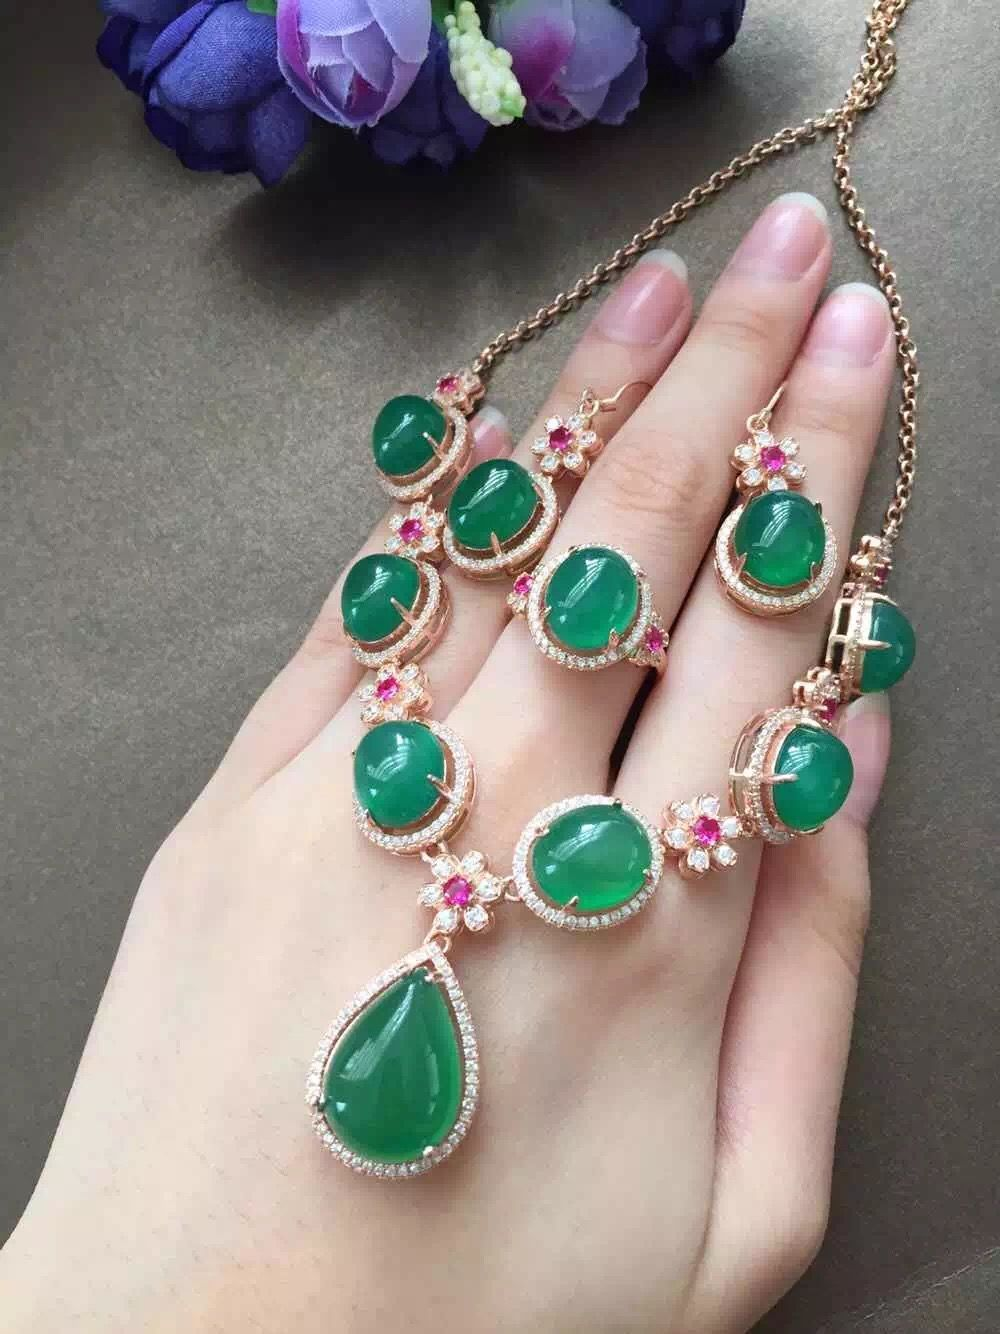 bracelet and earrings set Silver and green chalcedony necklace